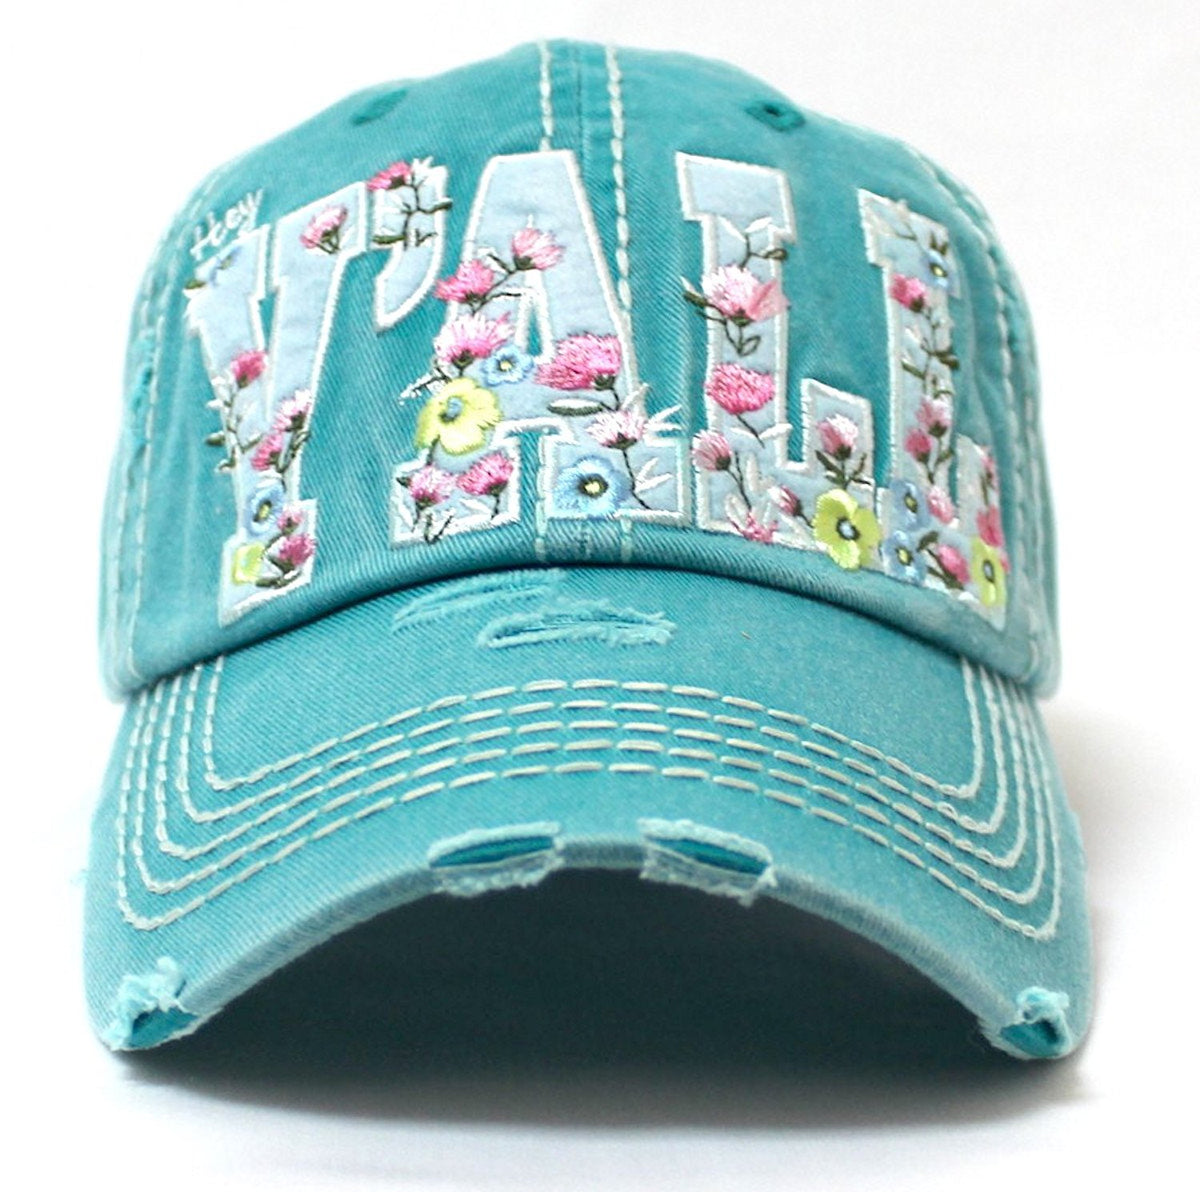 CAPS 'N VINTAGE Turquoise Floral Embroidery Hey Y'all Vintage Hat - Caps 'N Vintage